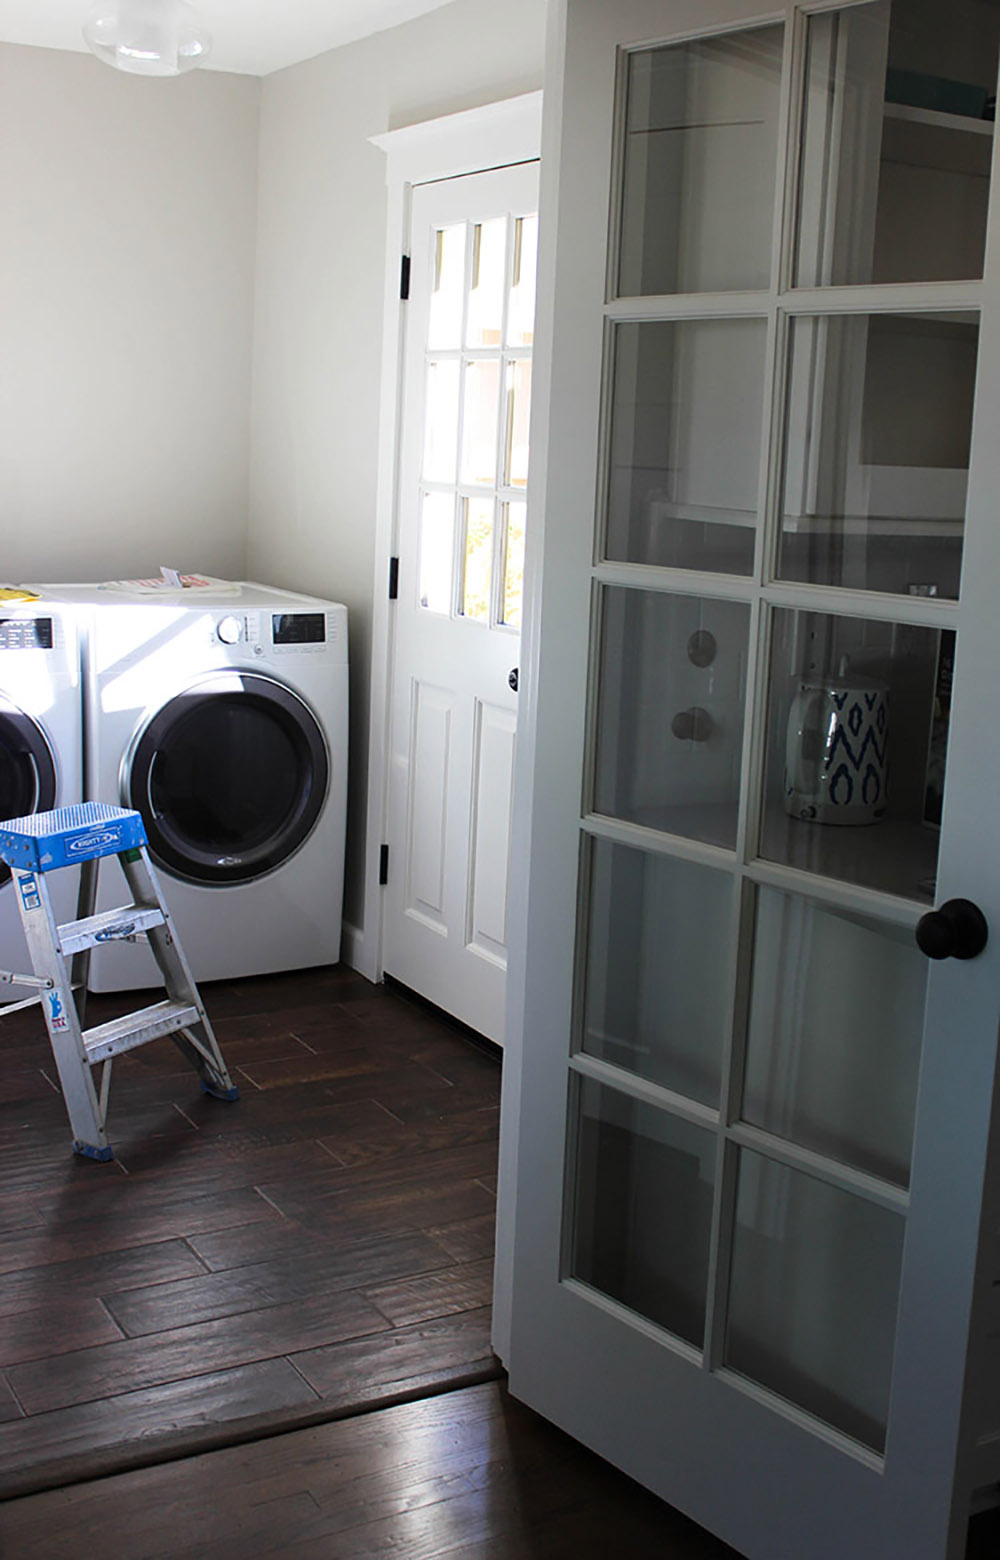 A laundry room with white front load laundry appliances and no storage.